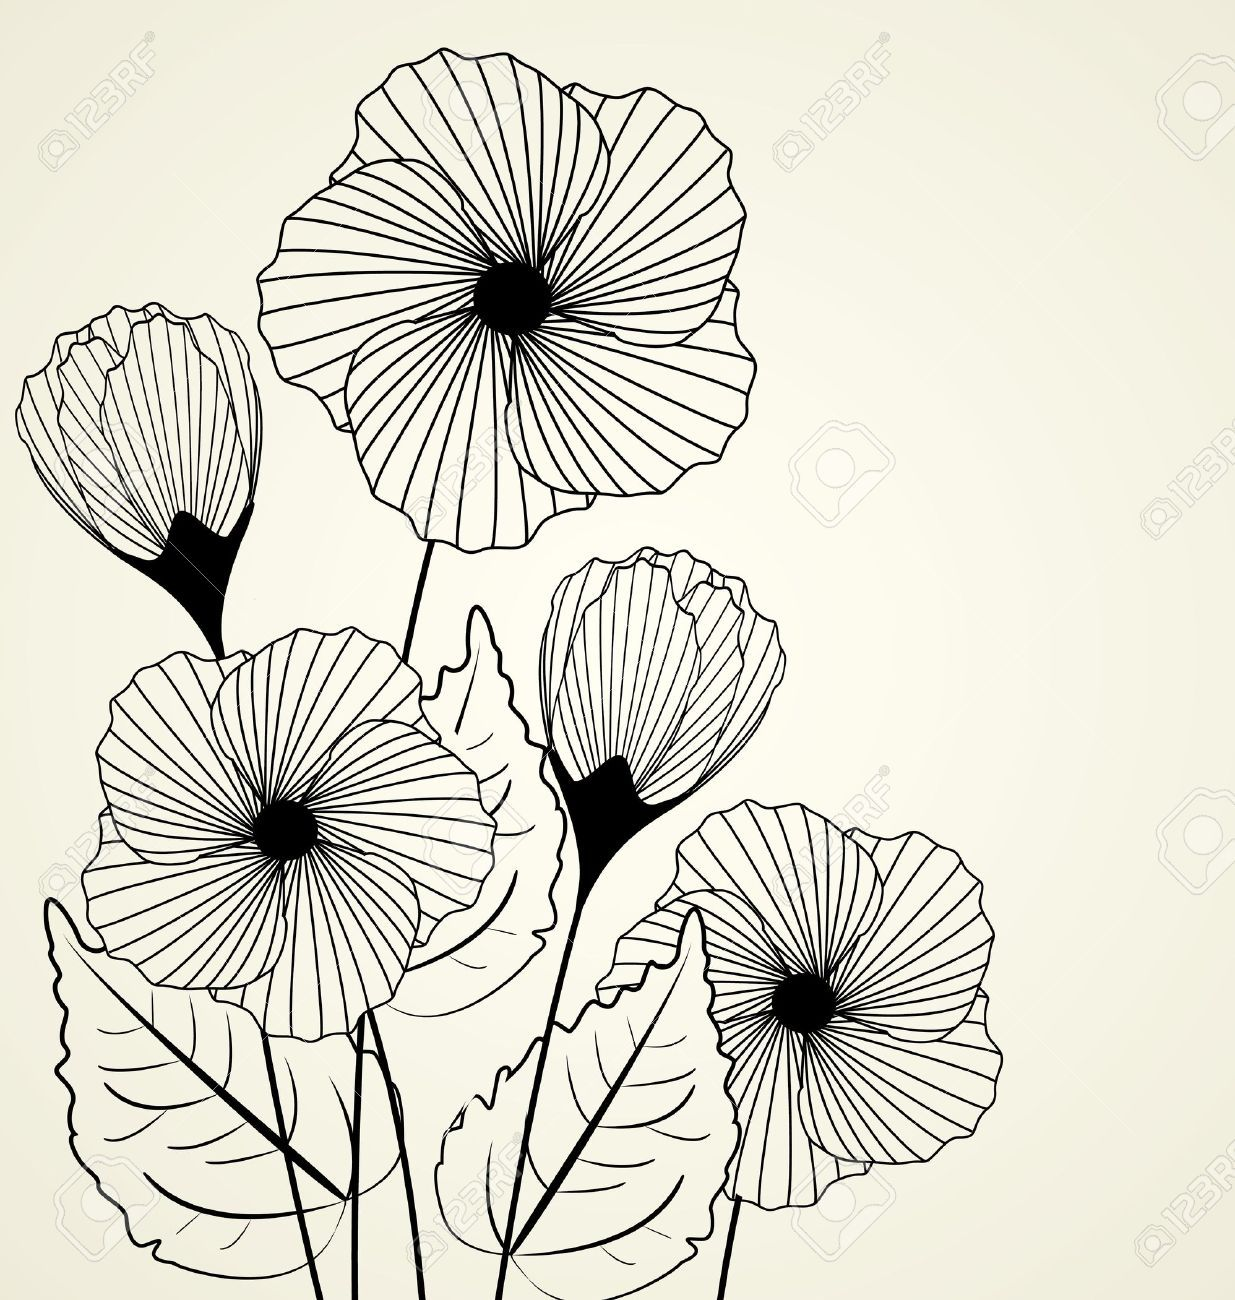 Silhouette of garden flowers in the background #backrounds